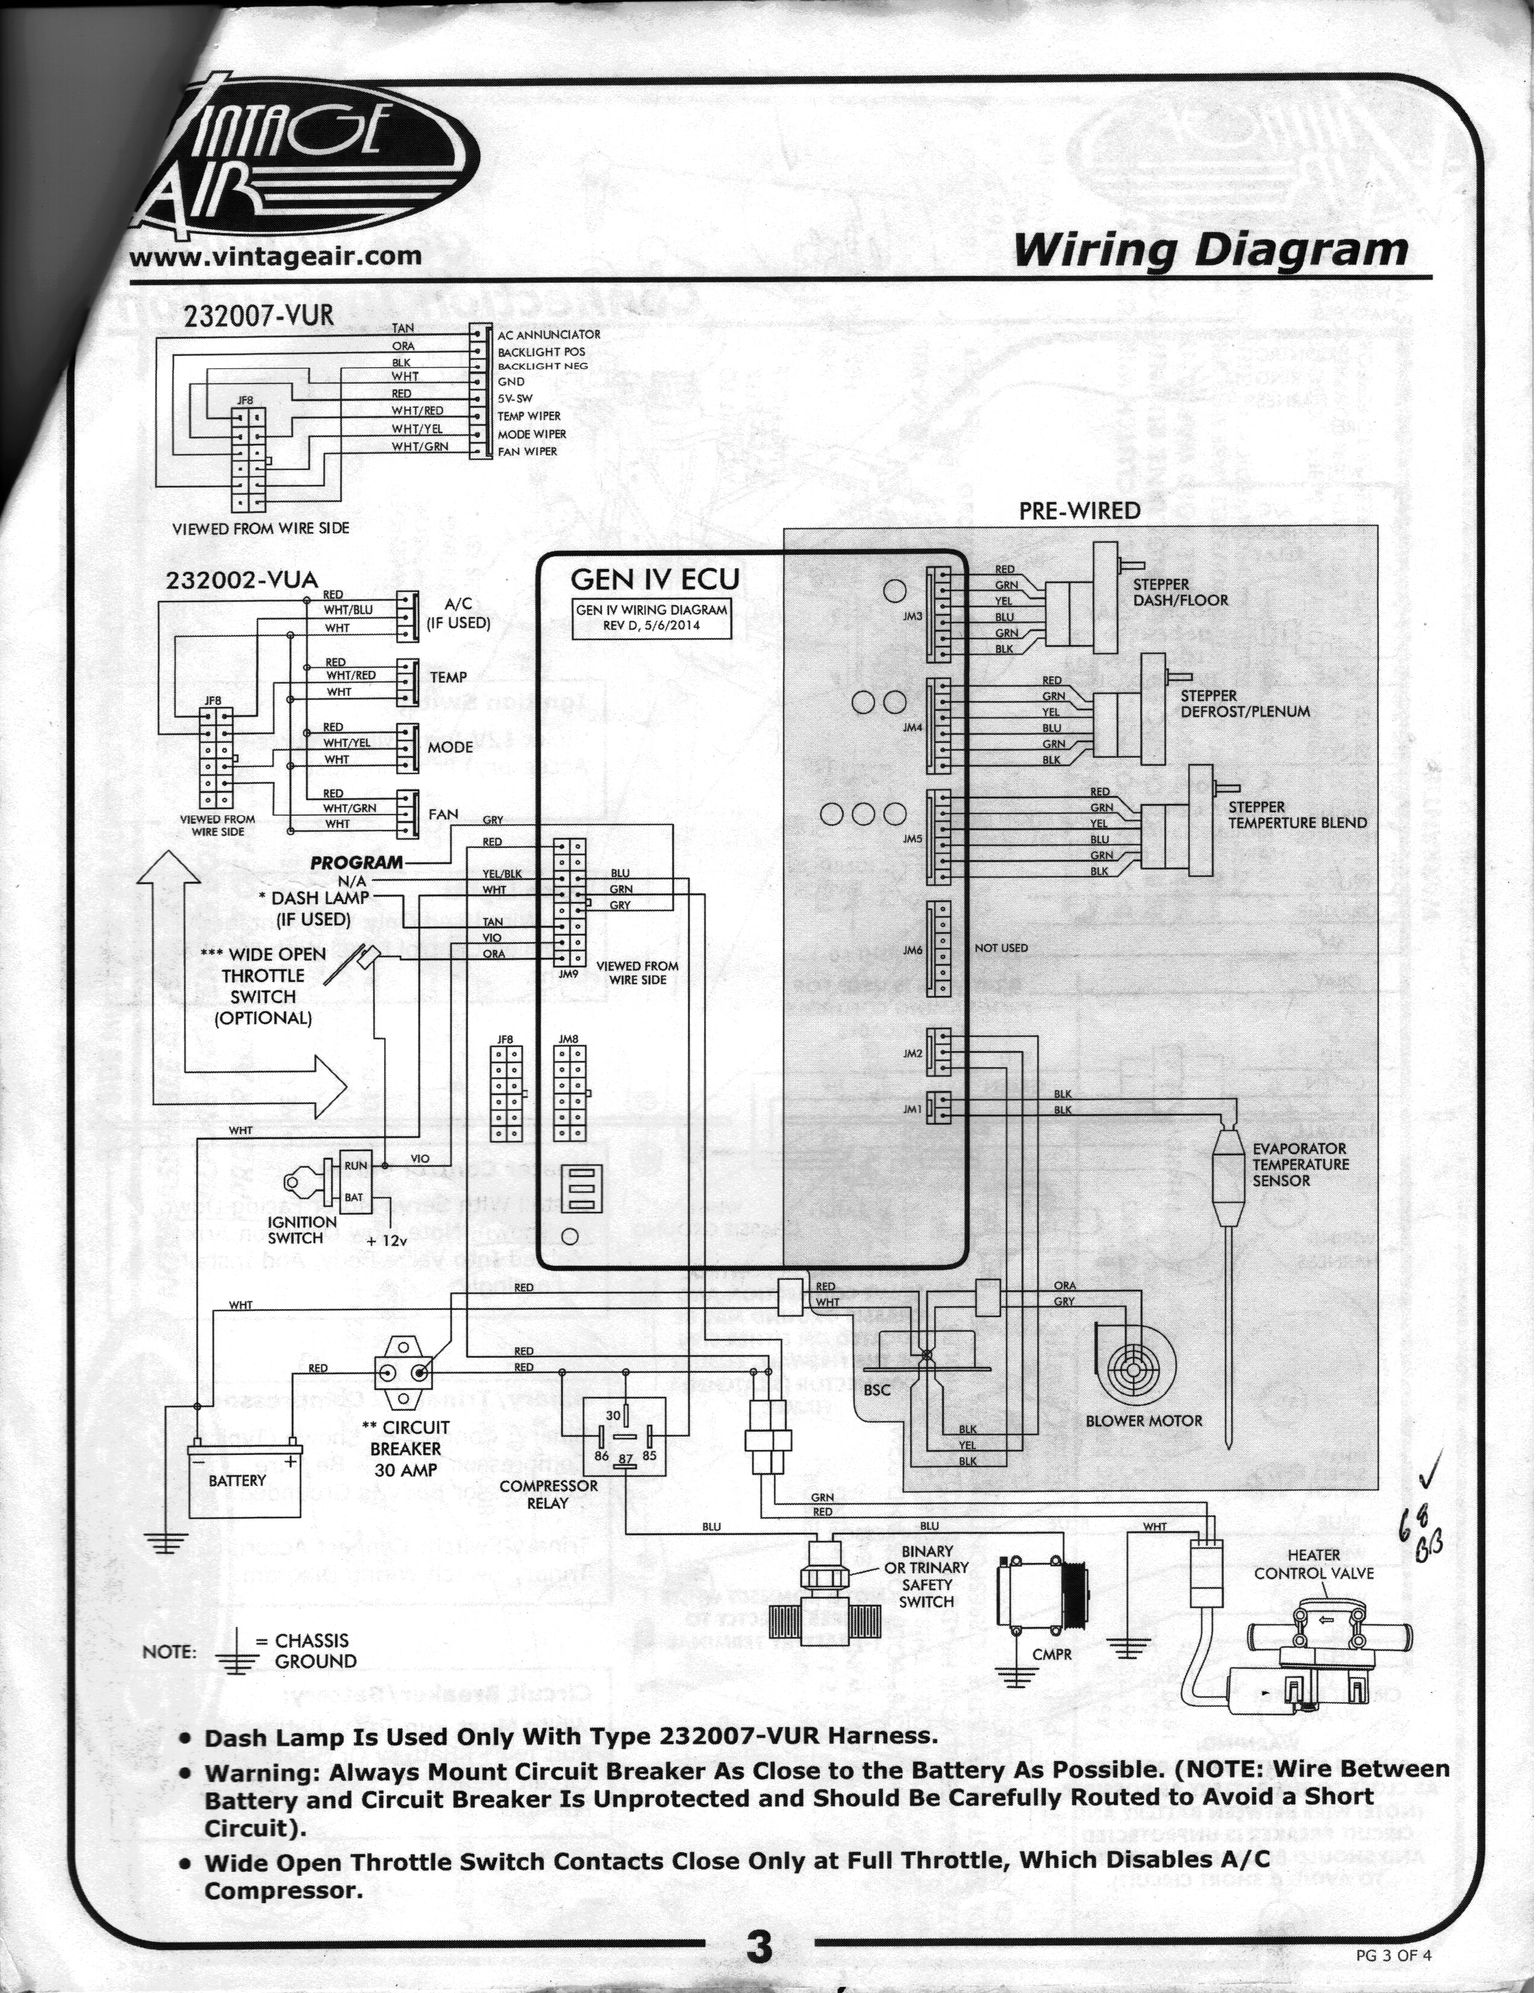 hight resolution of vintage air wiring diagram wiring diagram option vintage air trinary switch wiring diagram vintage air trinary